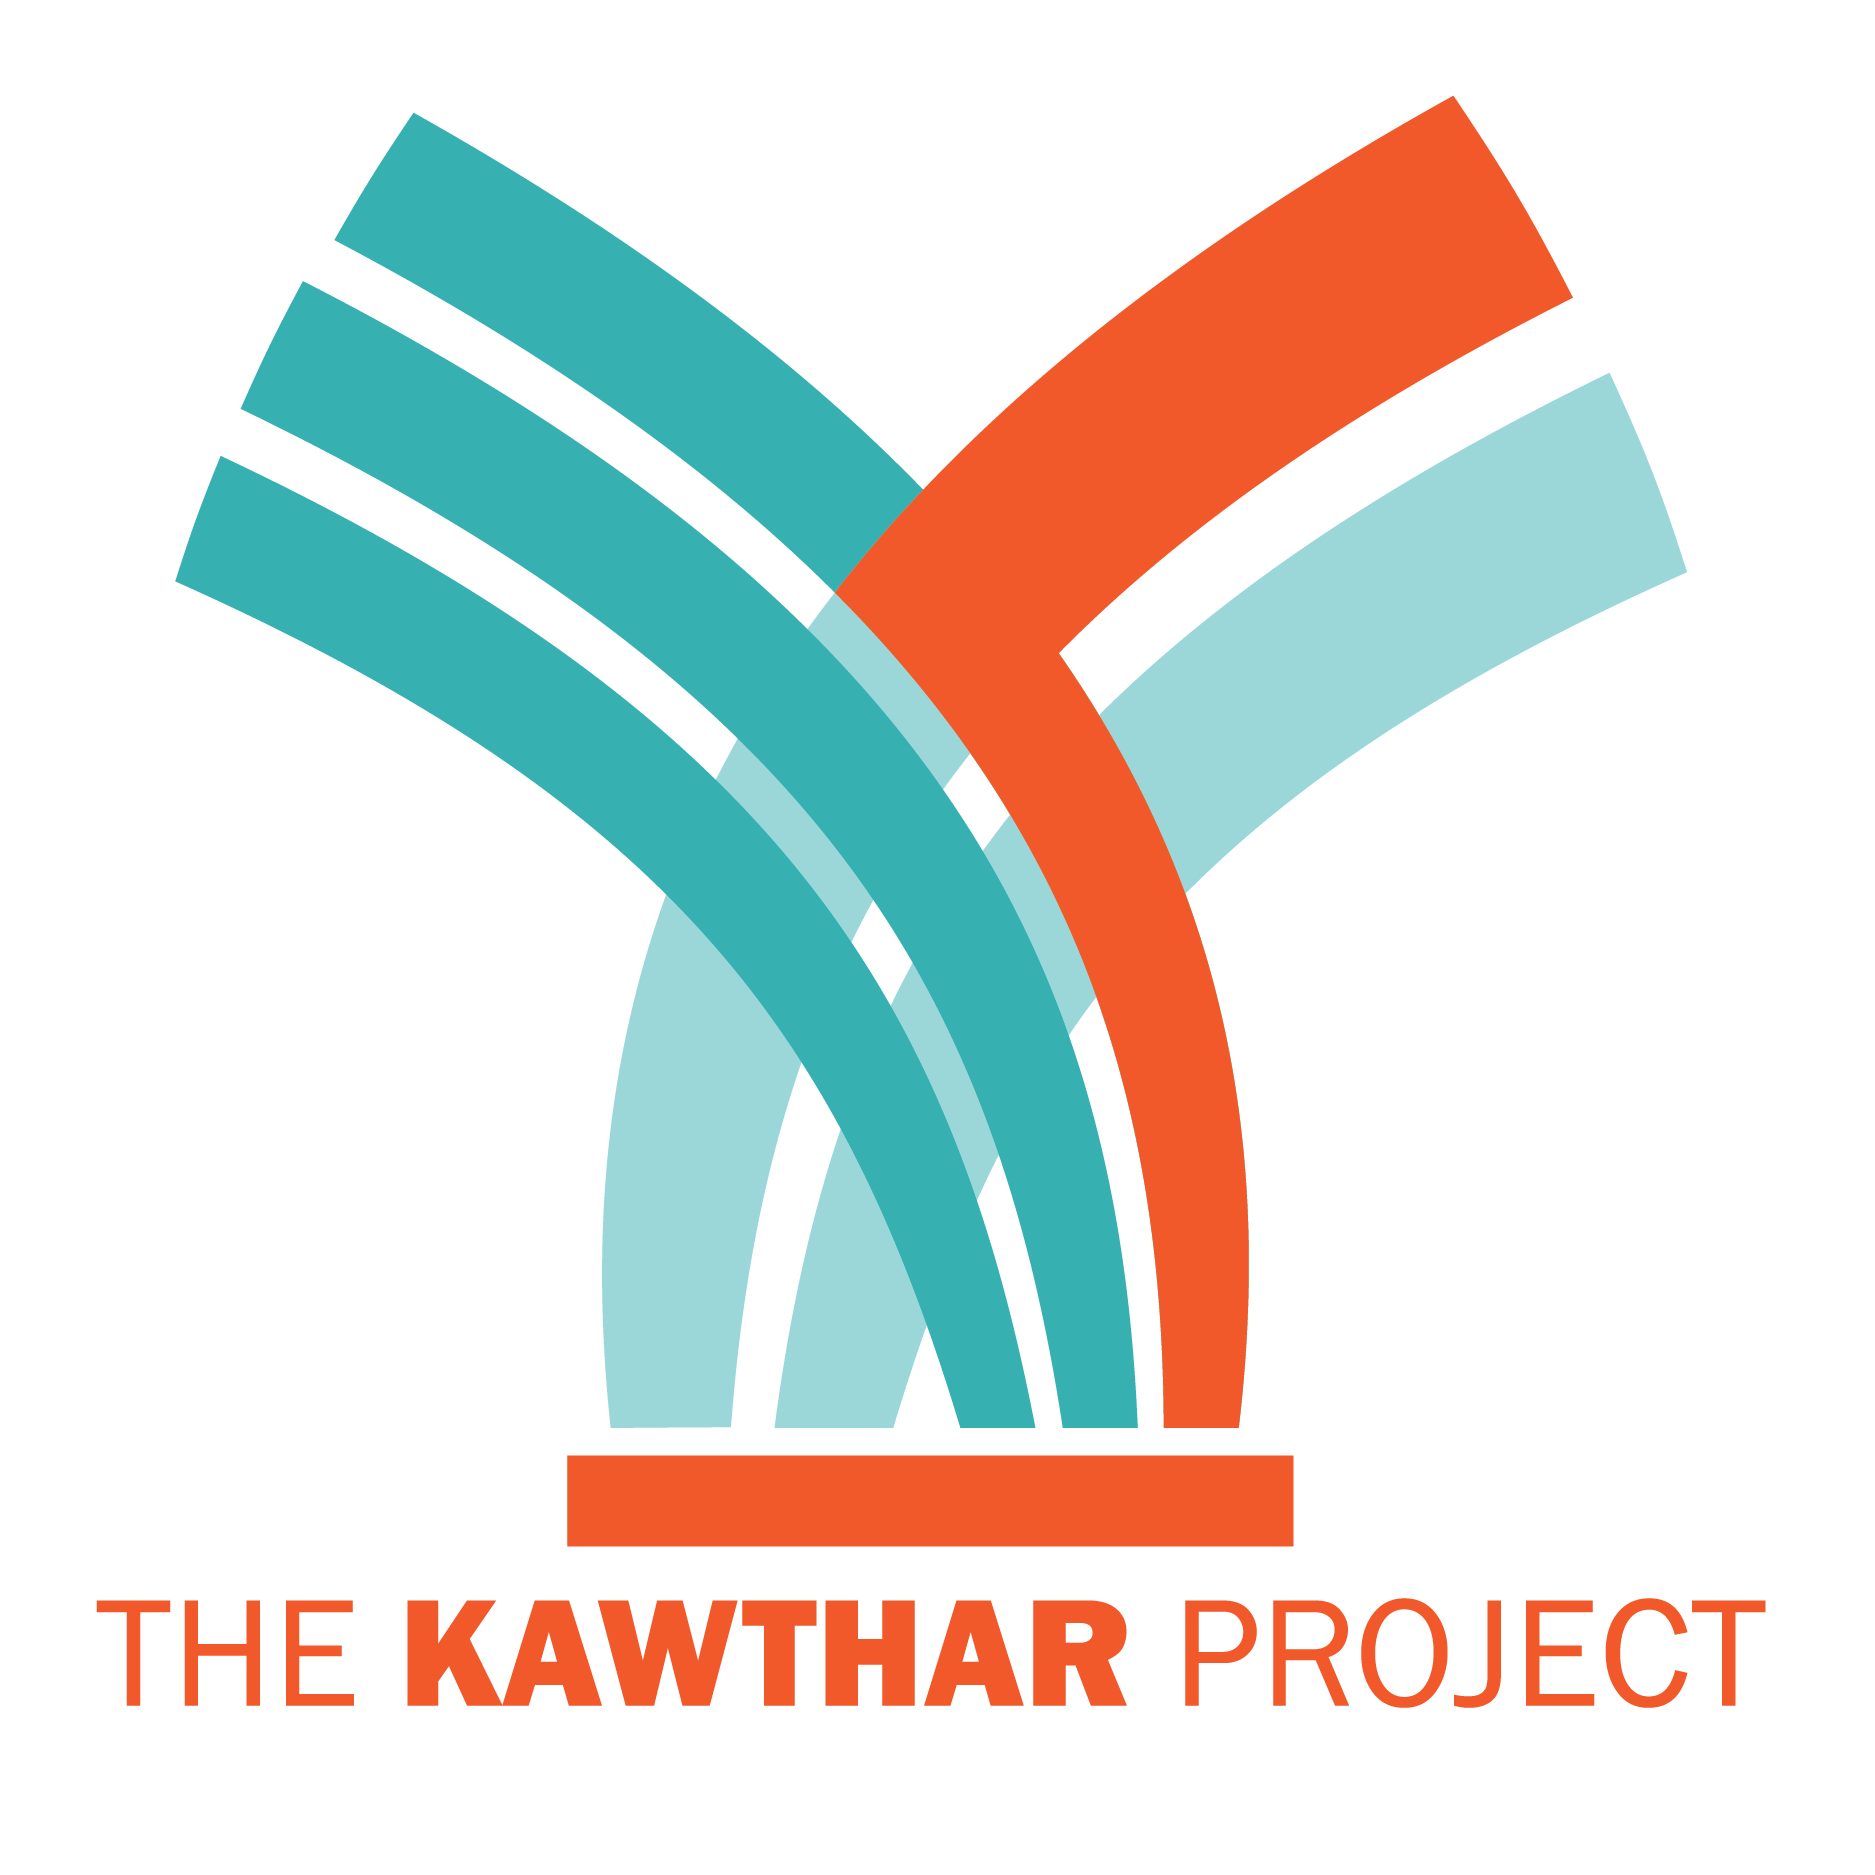 The Kawthar Project